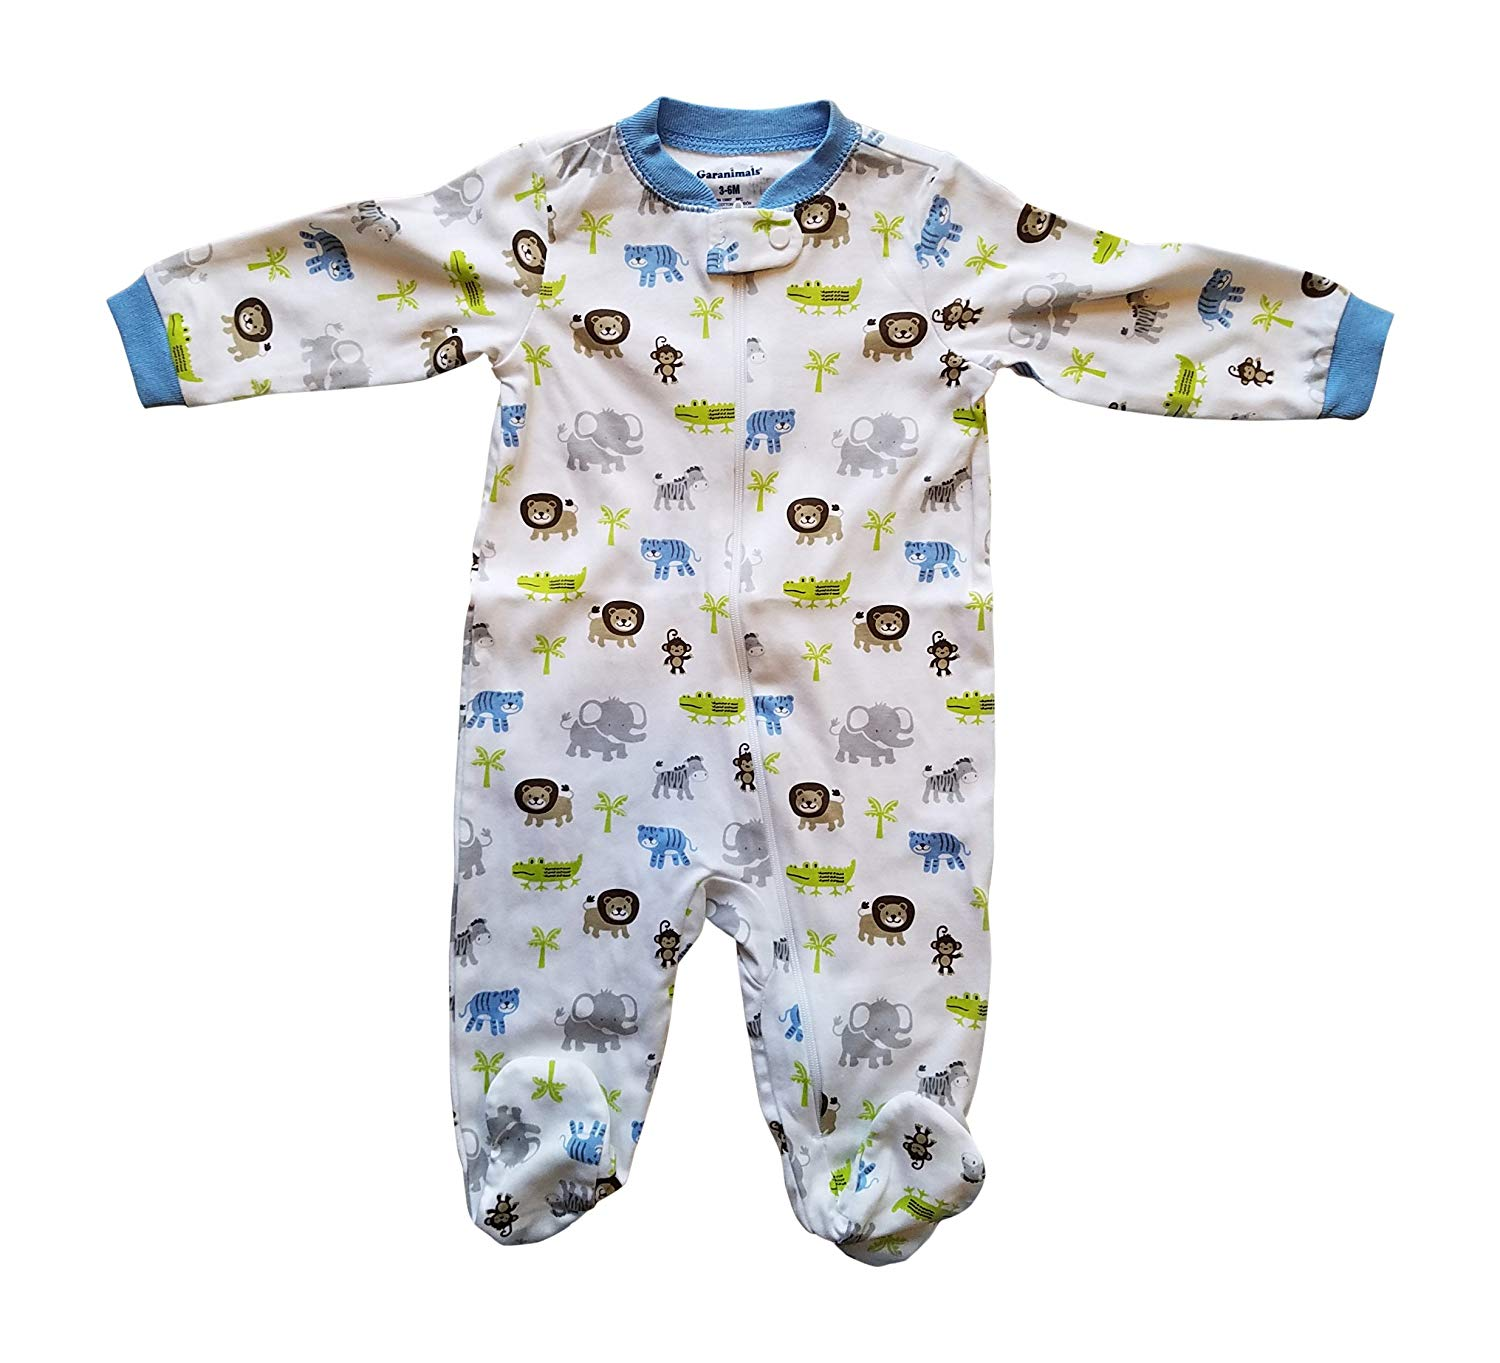 c56c29b075 Get Quotations · Baby Toddler Pajamas with Footies Jungle with Elephant  Tiger Monkey Alligator